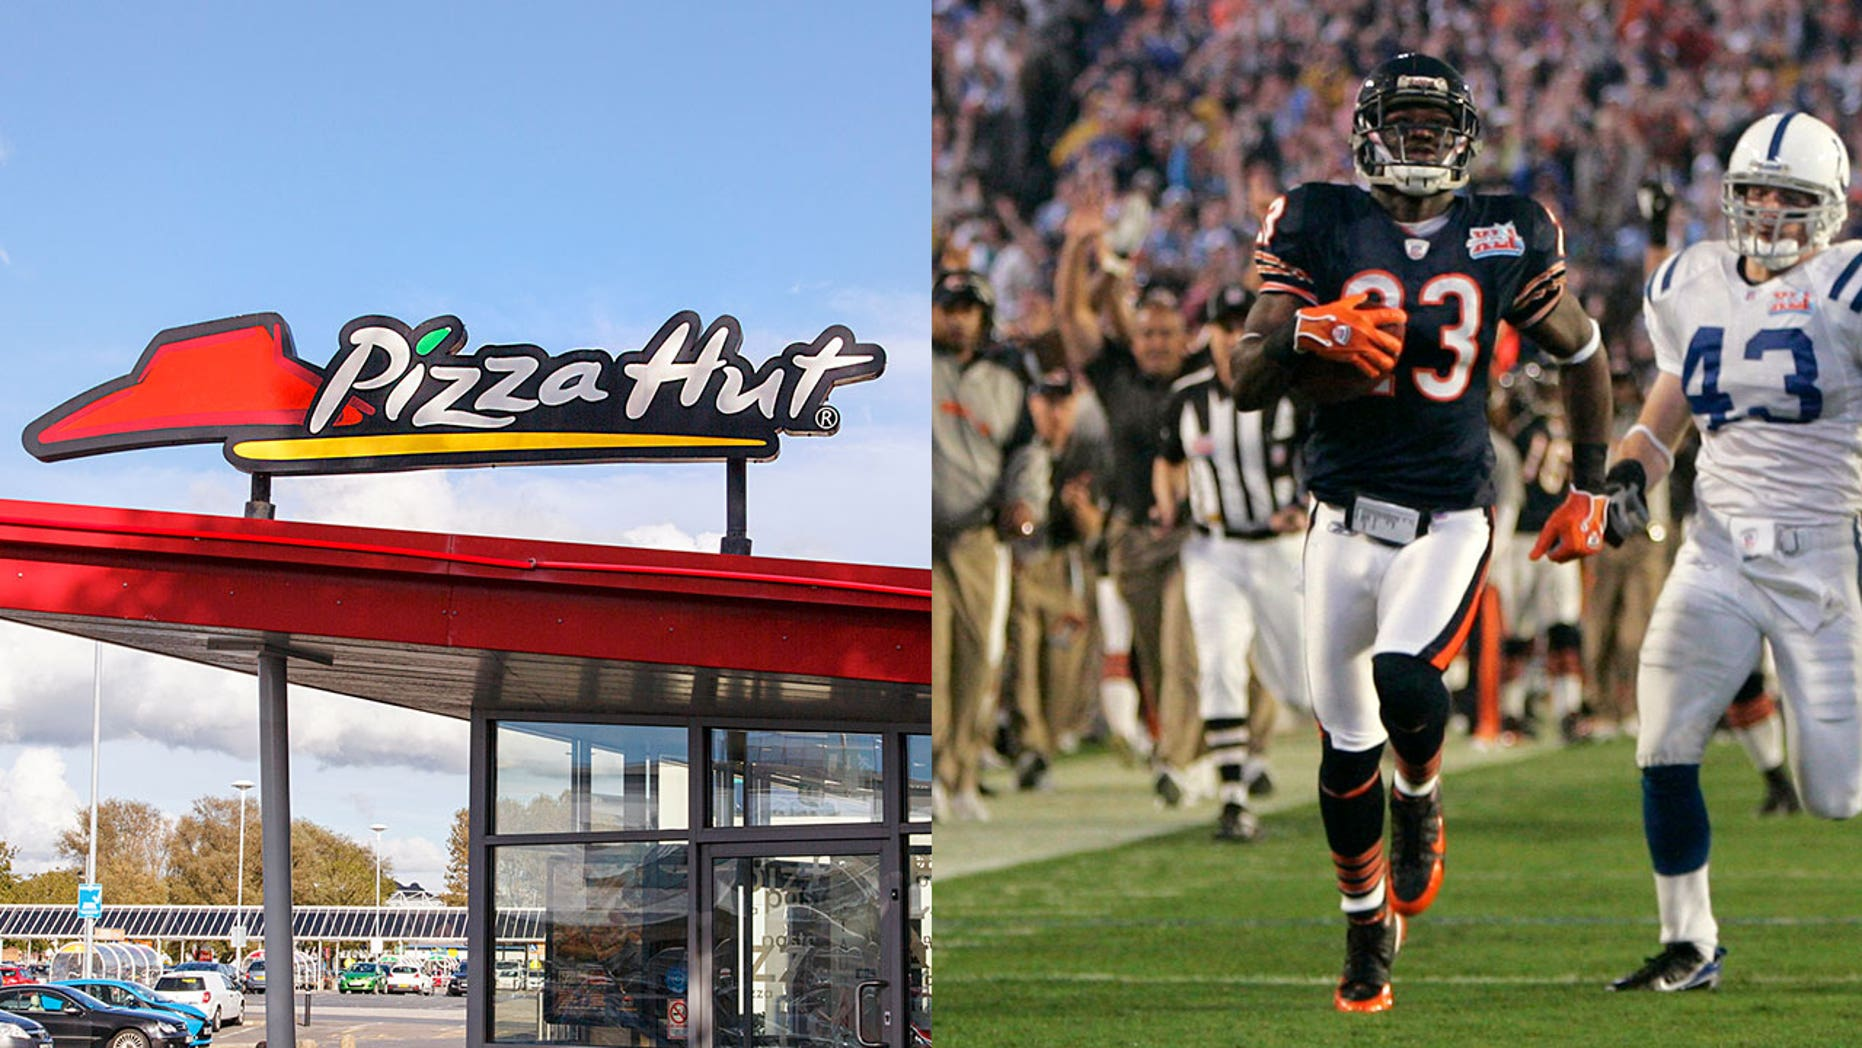 Pizza Hut plans to gift America with free food if any NFL player manages to score a touchdown in the first 14 seconds of this year's Super Bowl, like Devin Hester did at Super Bowl LII.